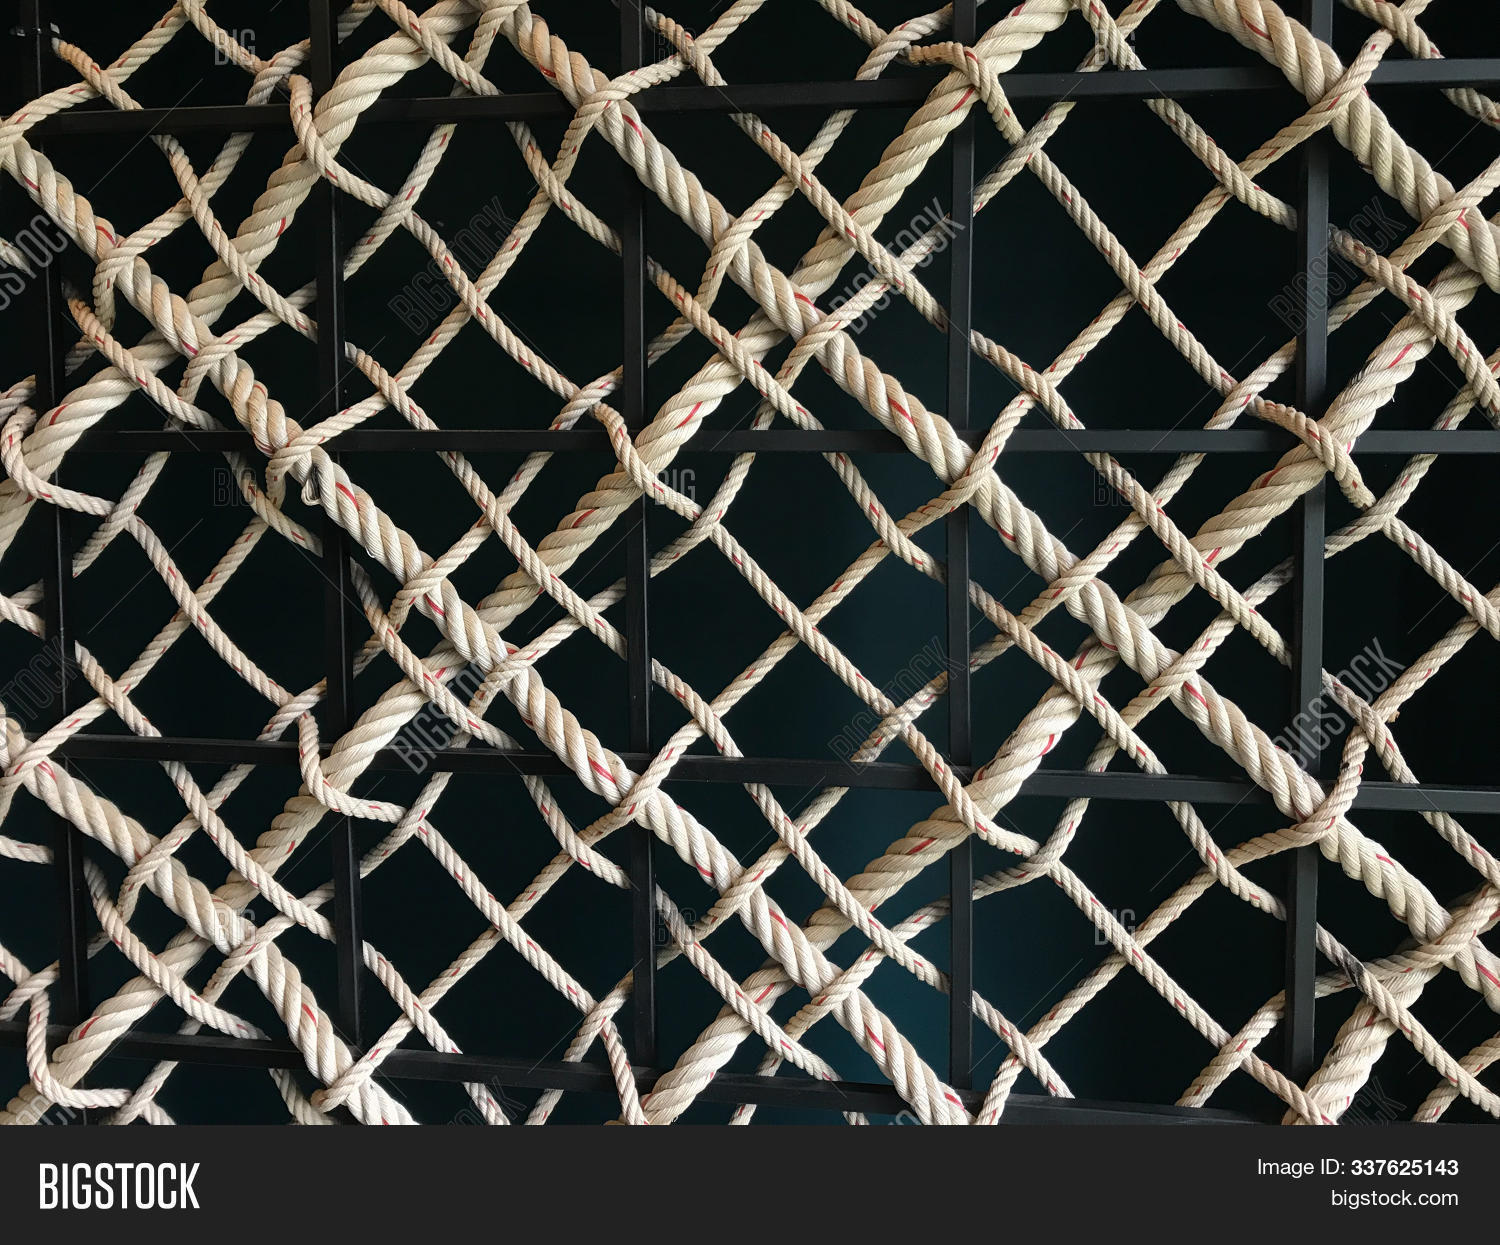 abstract,backdrop,background,bar,black,bright,brown,cement,confine,contain,dark,day,decor,decoration,design,detain,fence,frame,full,gray,grunge,iron,light,material,metal,modern,natural,net,nylon,old,pattern,piece,plastic,prison,rope,rough,rustic,security,shape,shot,square,steel,strings,structure,surface,table,texture,vintage,wall,wallpaper